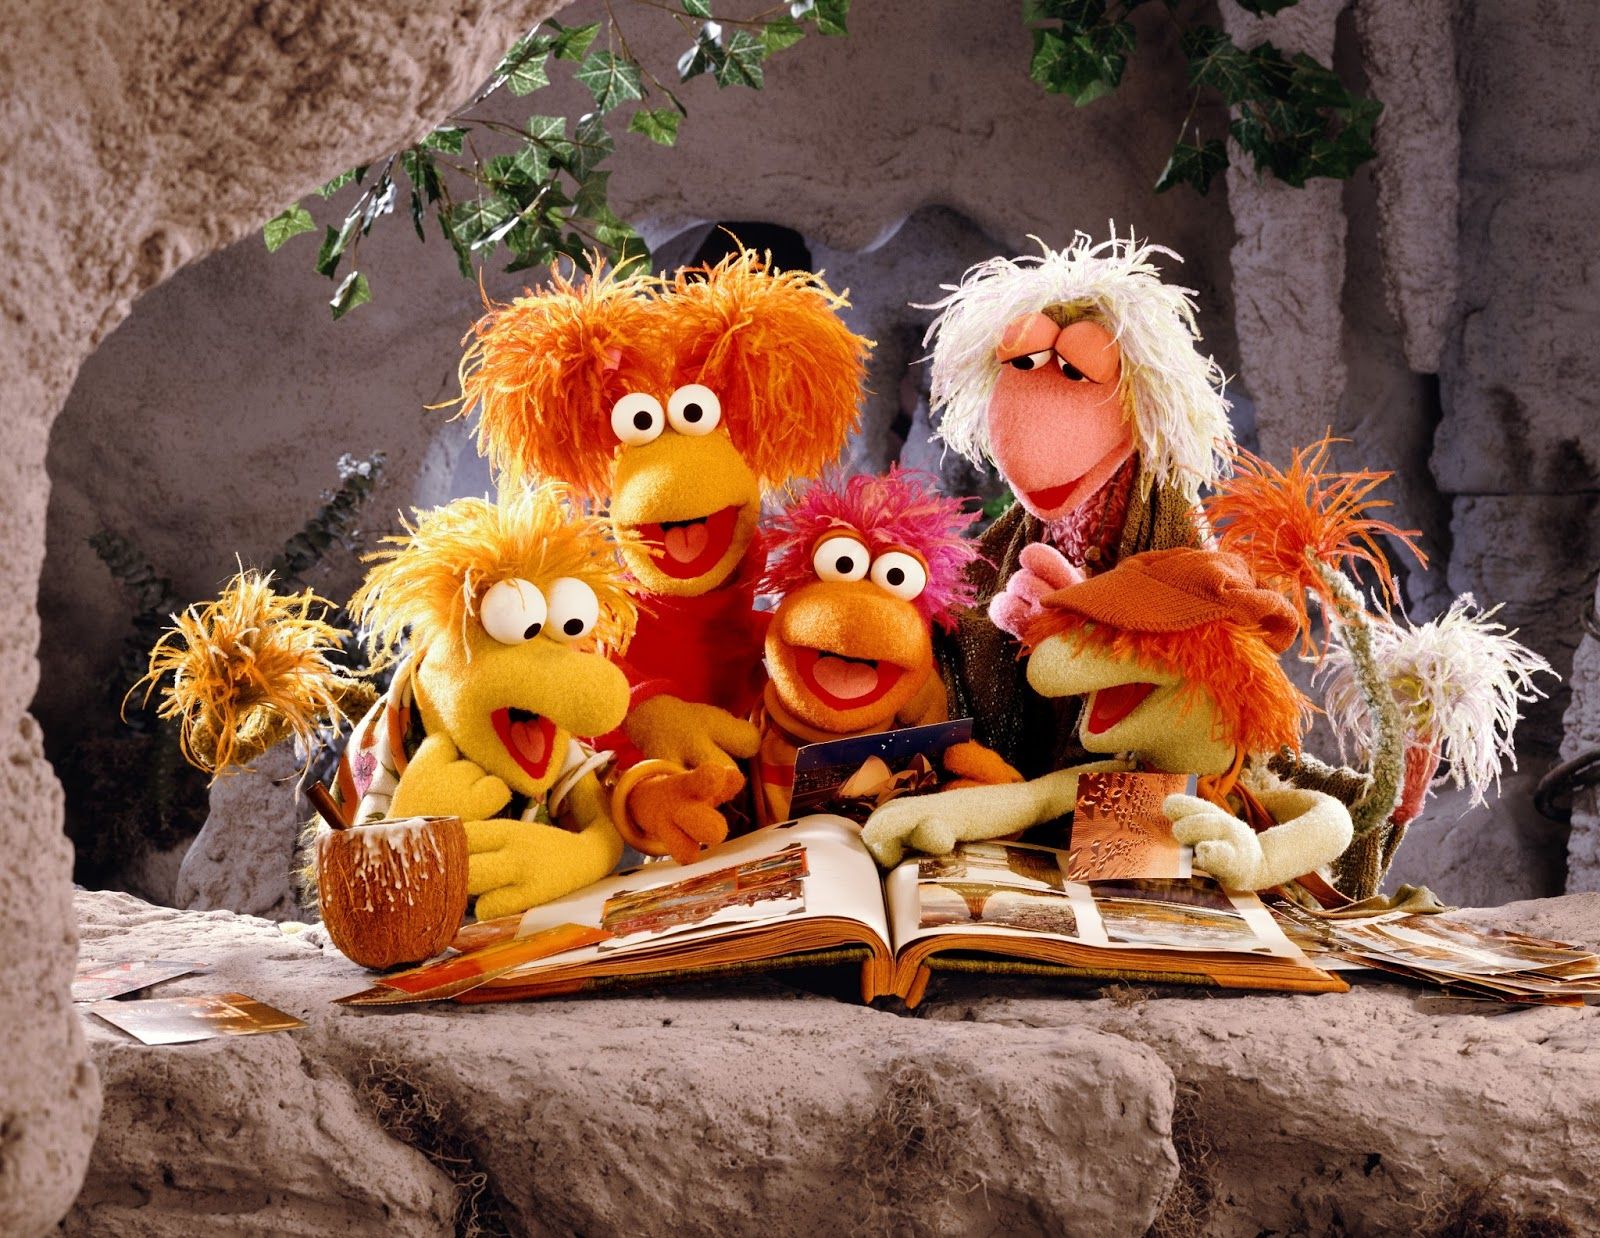 House Tv Series Hulu Kids Adds Quot Fraggle Rock Quot And More Jim Henson Family